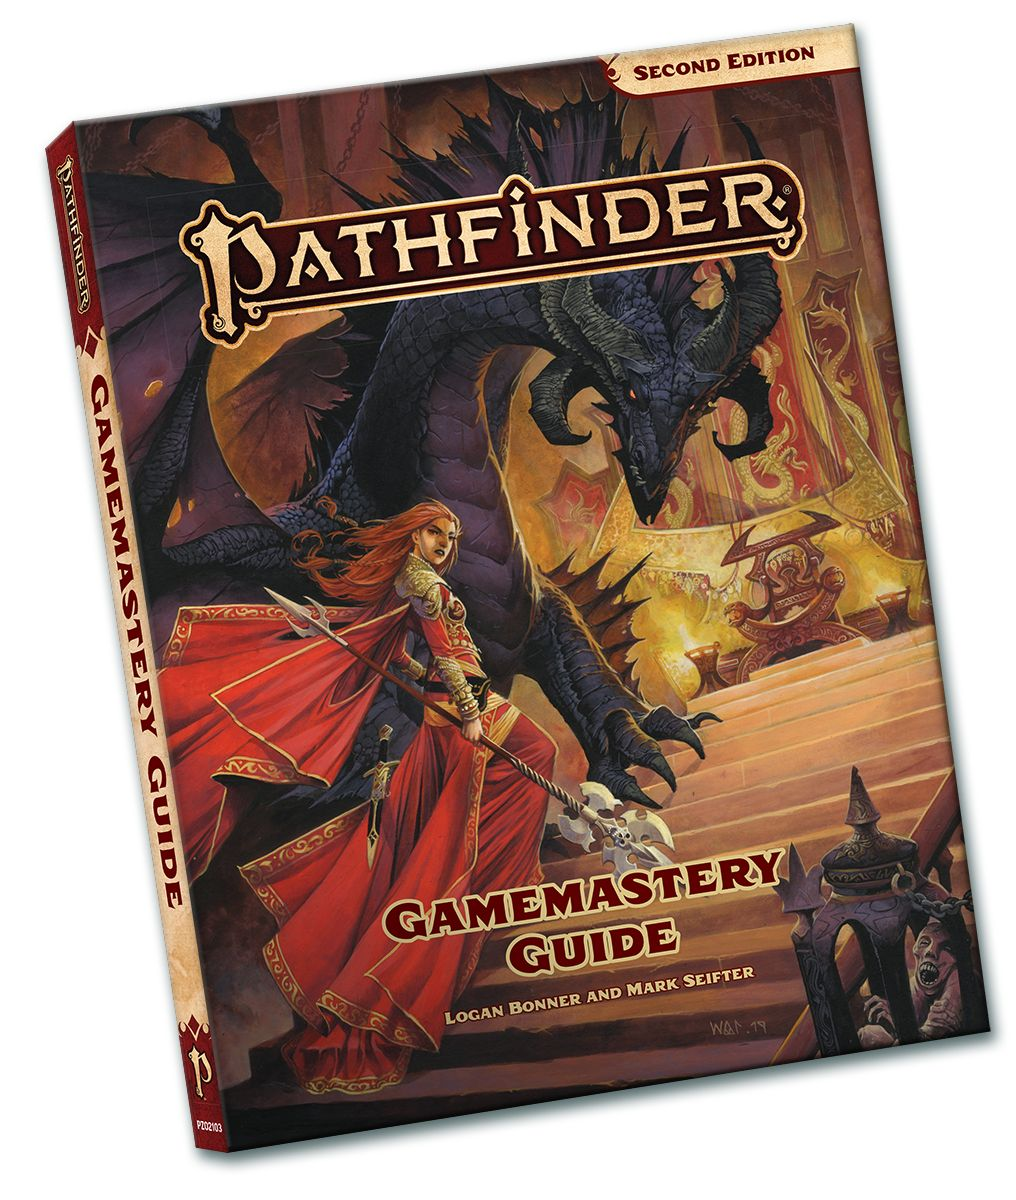 Pathfinder 2E: Gamemastery Guide Pocket Edition